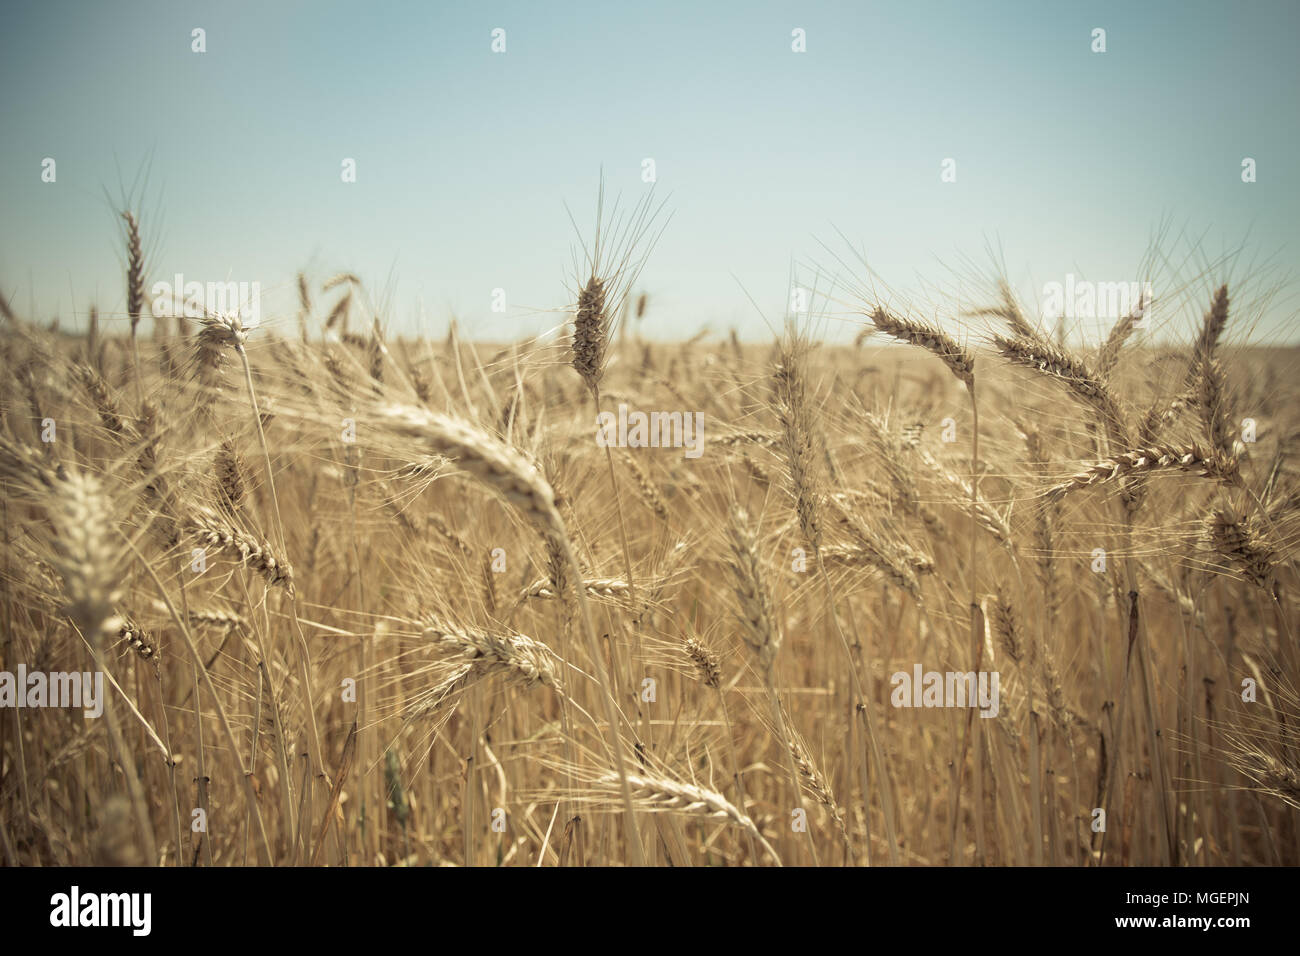 Close up of a golden wheat field. Blurred background. - Stock Image